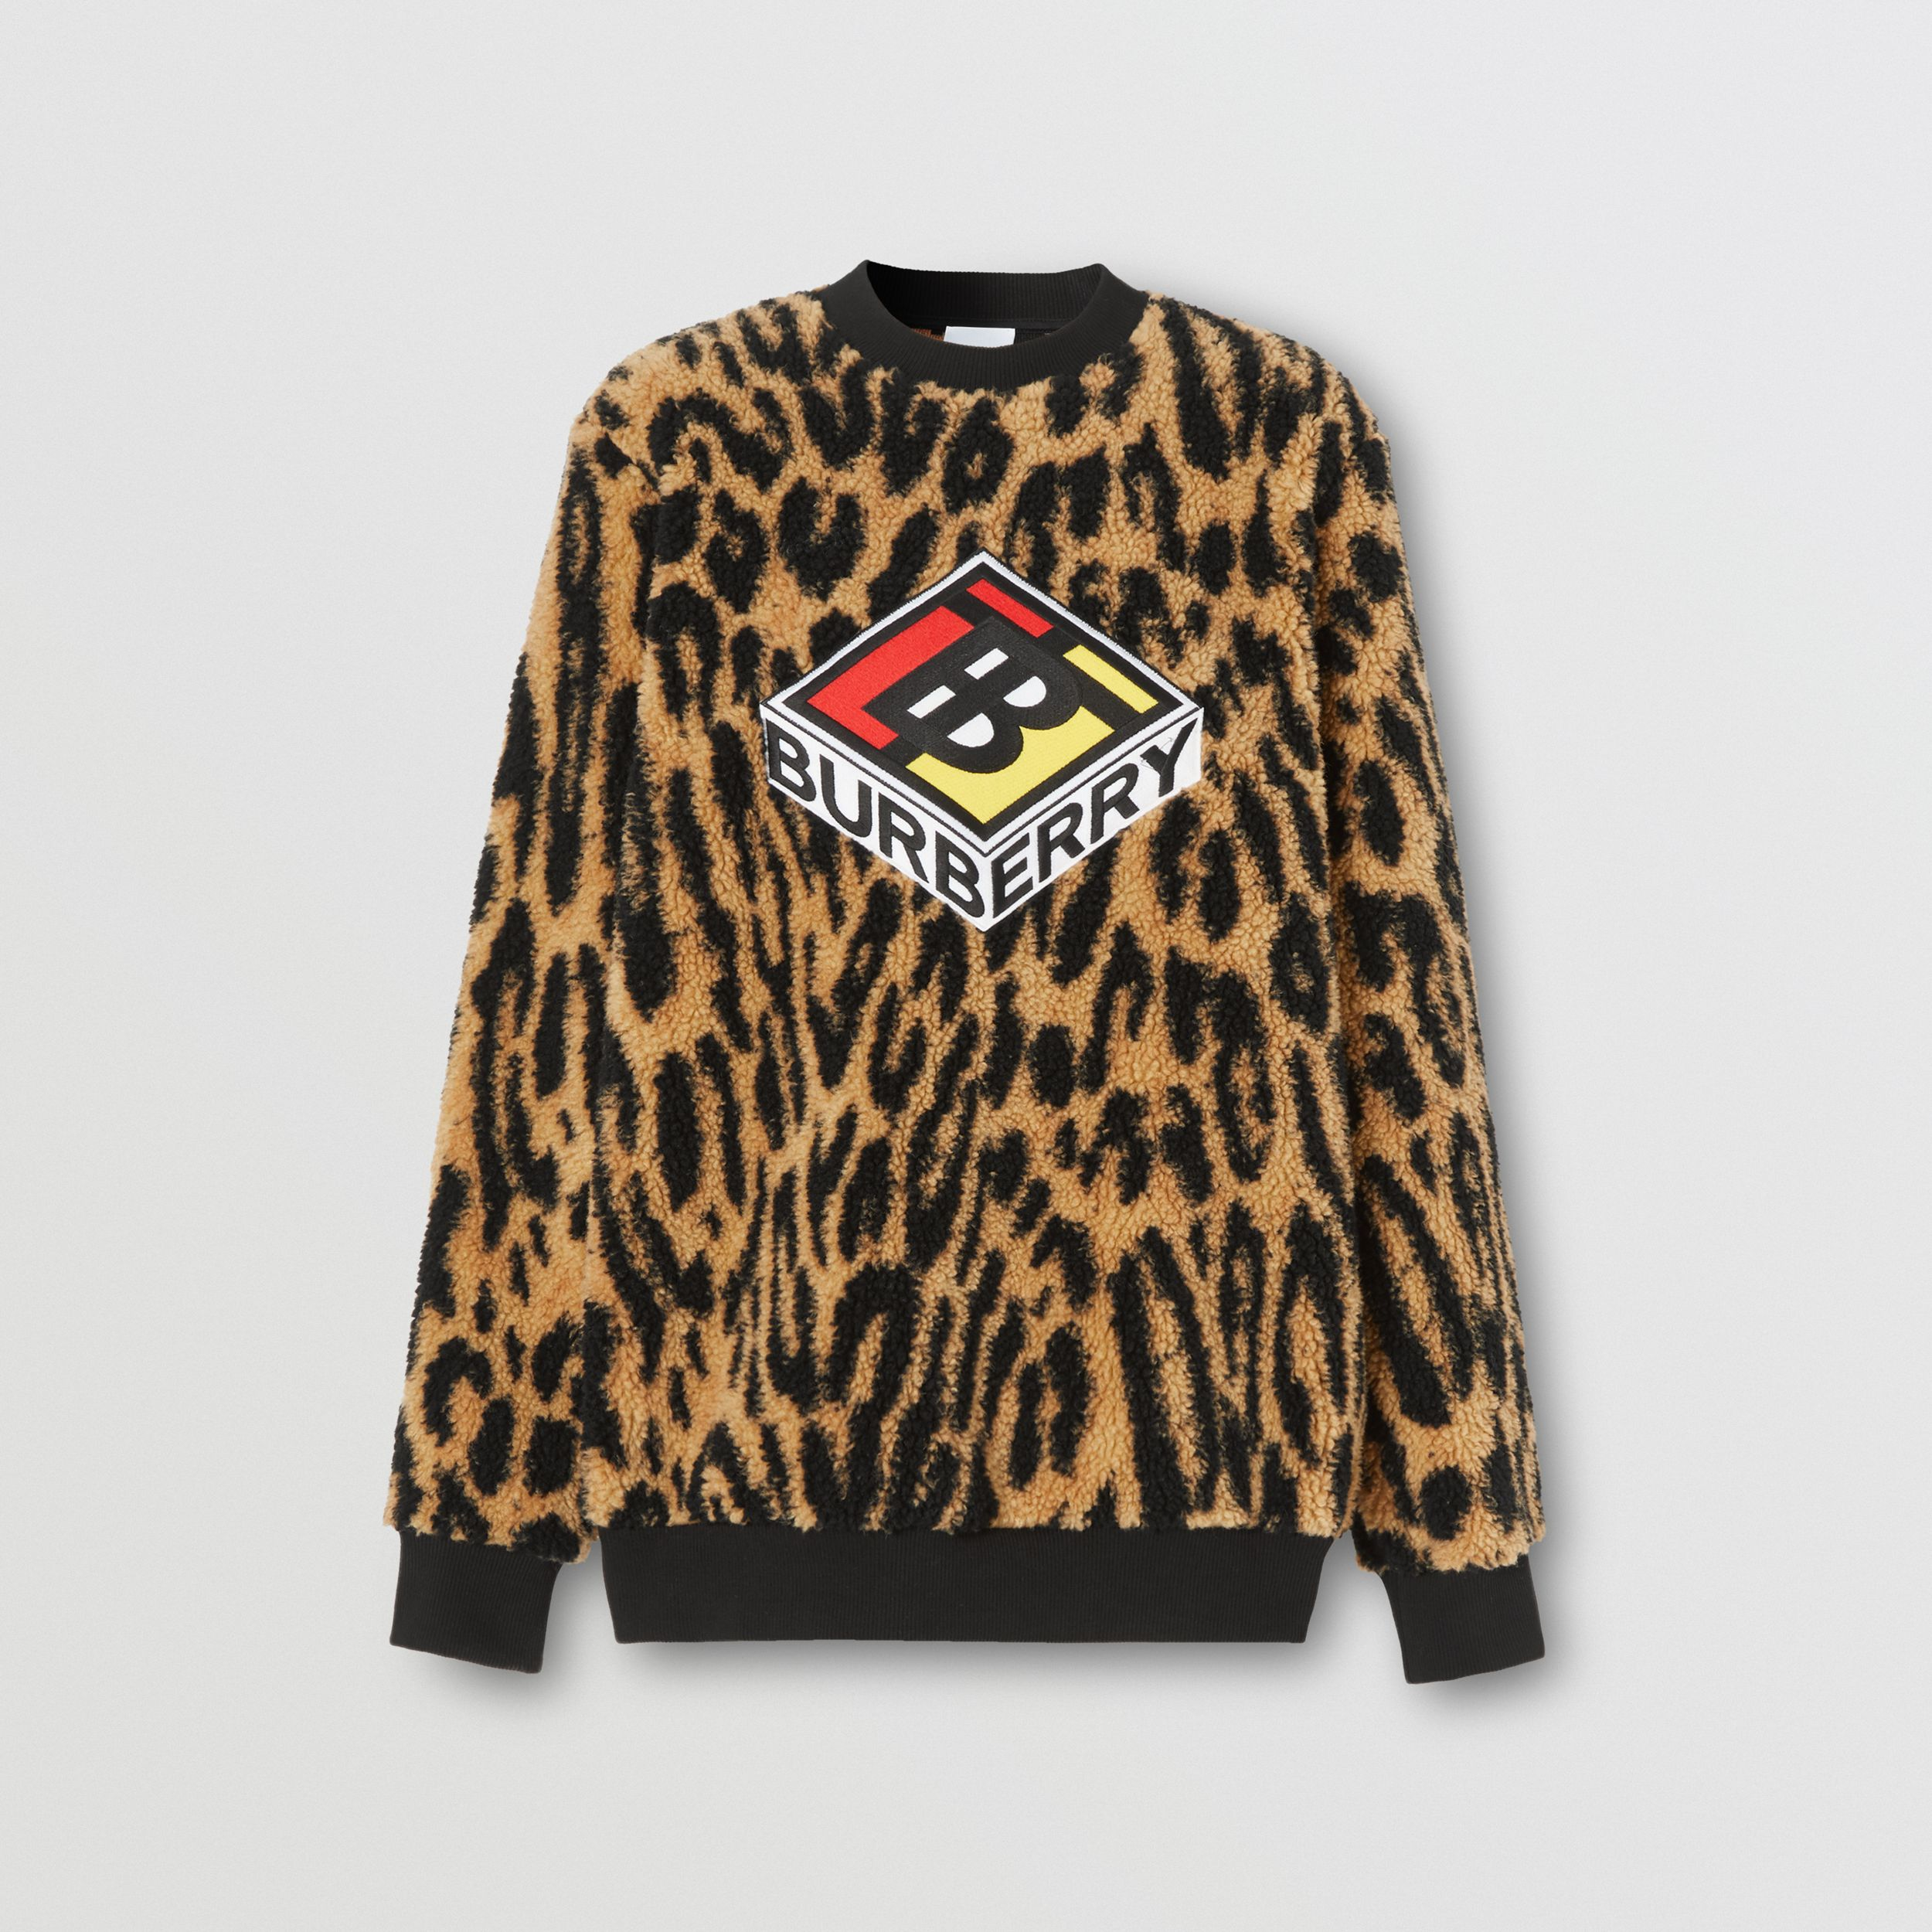 Logo Graphic Leopard Fleece Jacquard Sweatshirt in Dark Mustard - Women | Burberry - 4